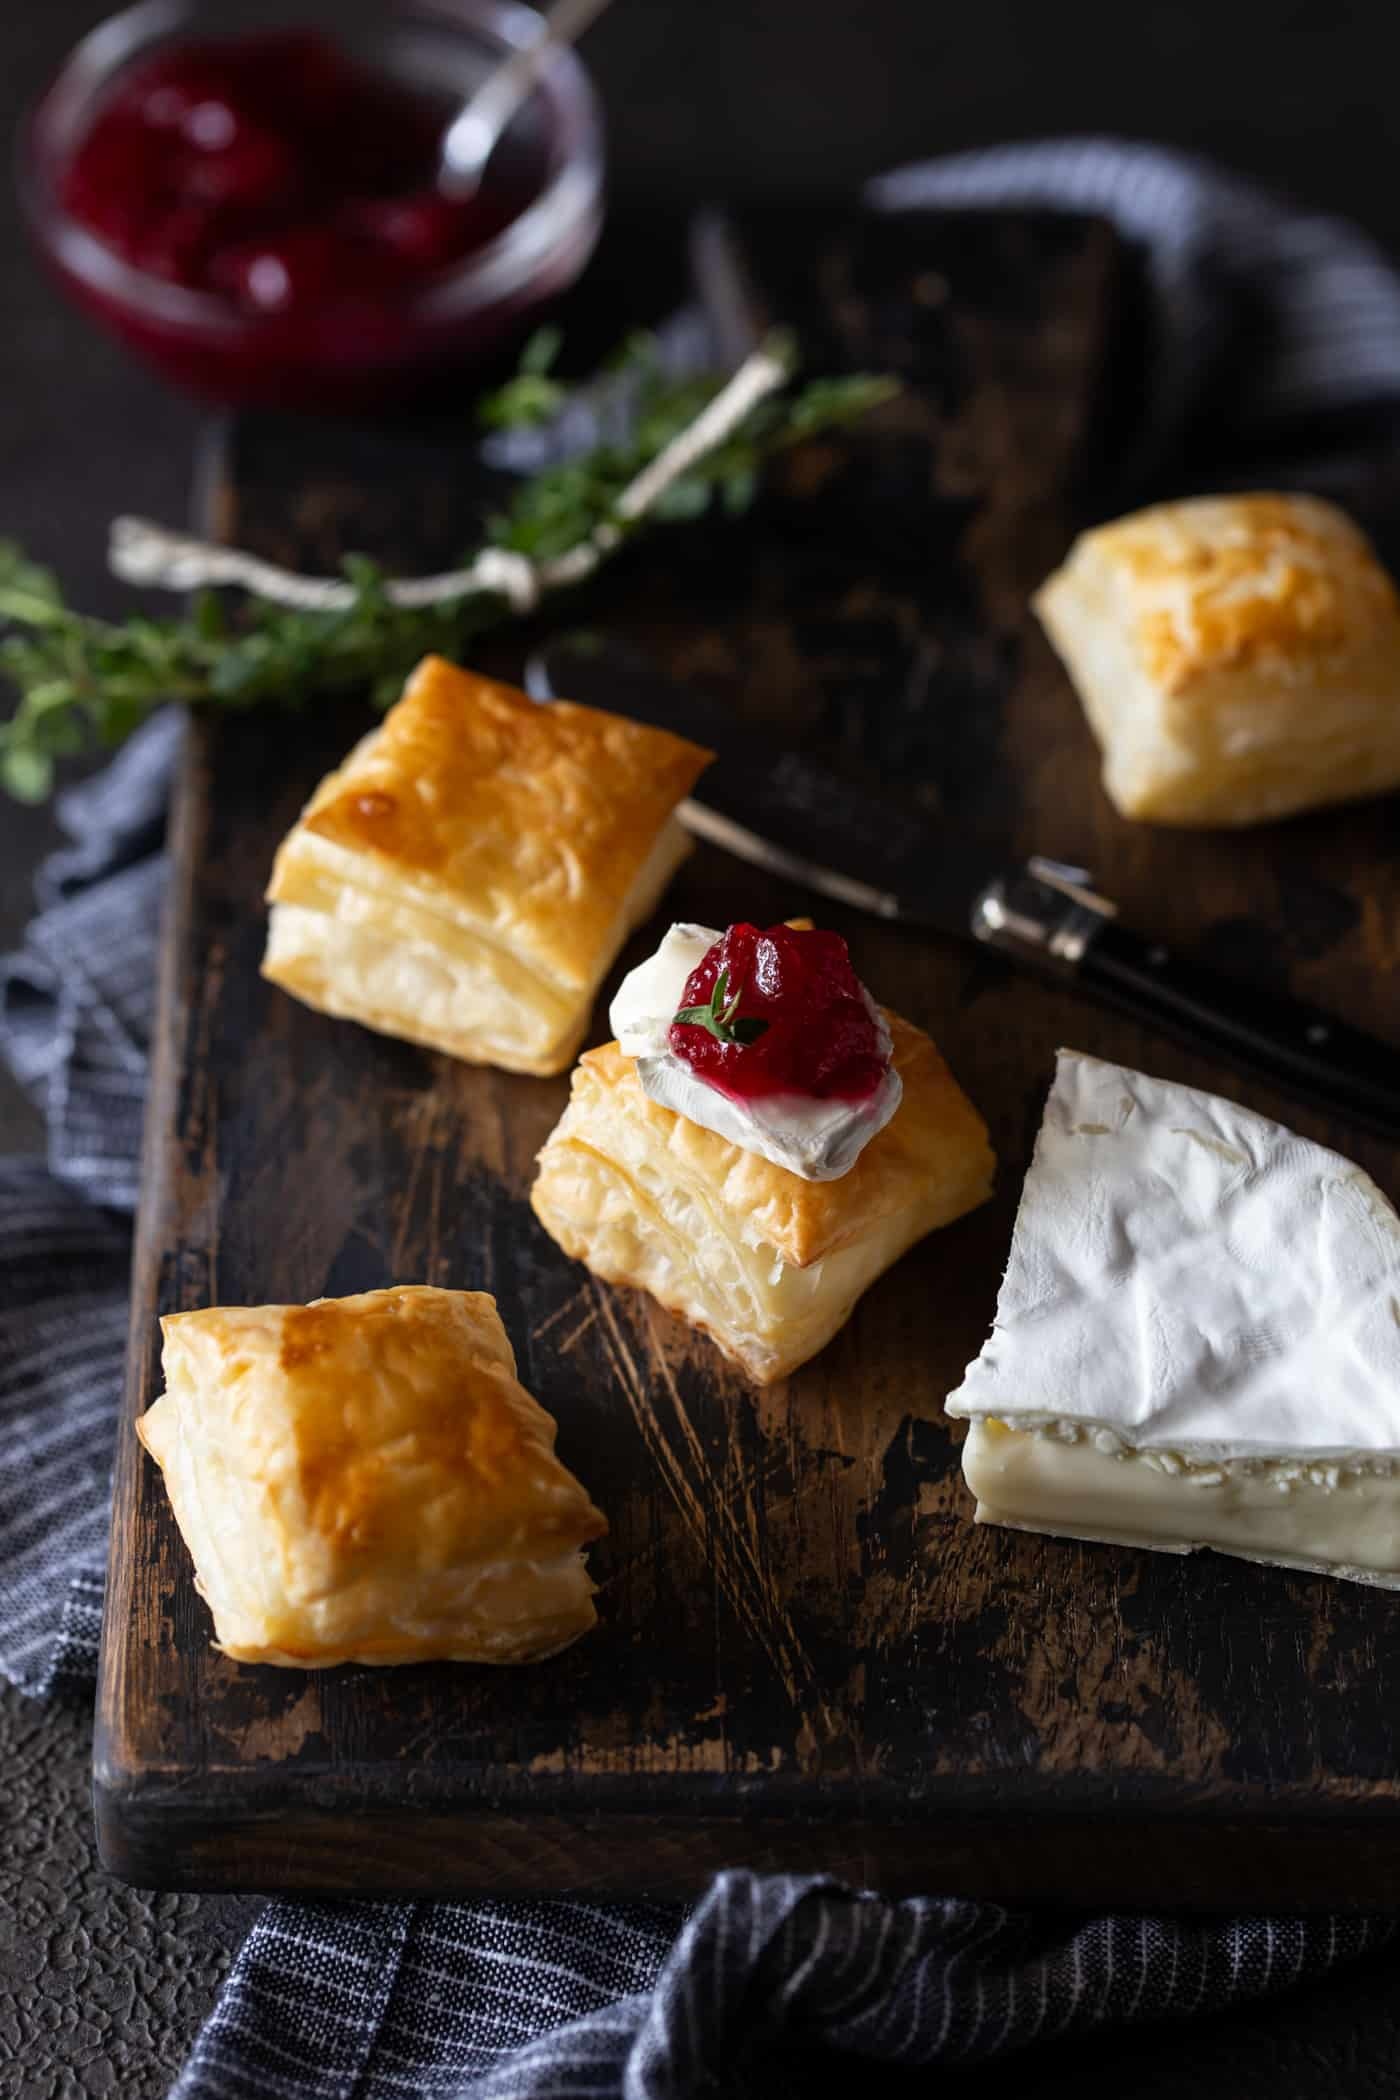 Top down image of brie wedge with puff pastry bites next to it and a bowl of cranberry sauce on a dark background.